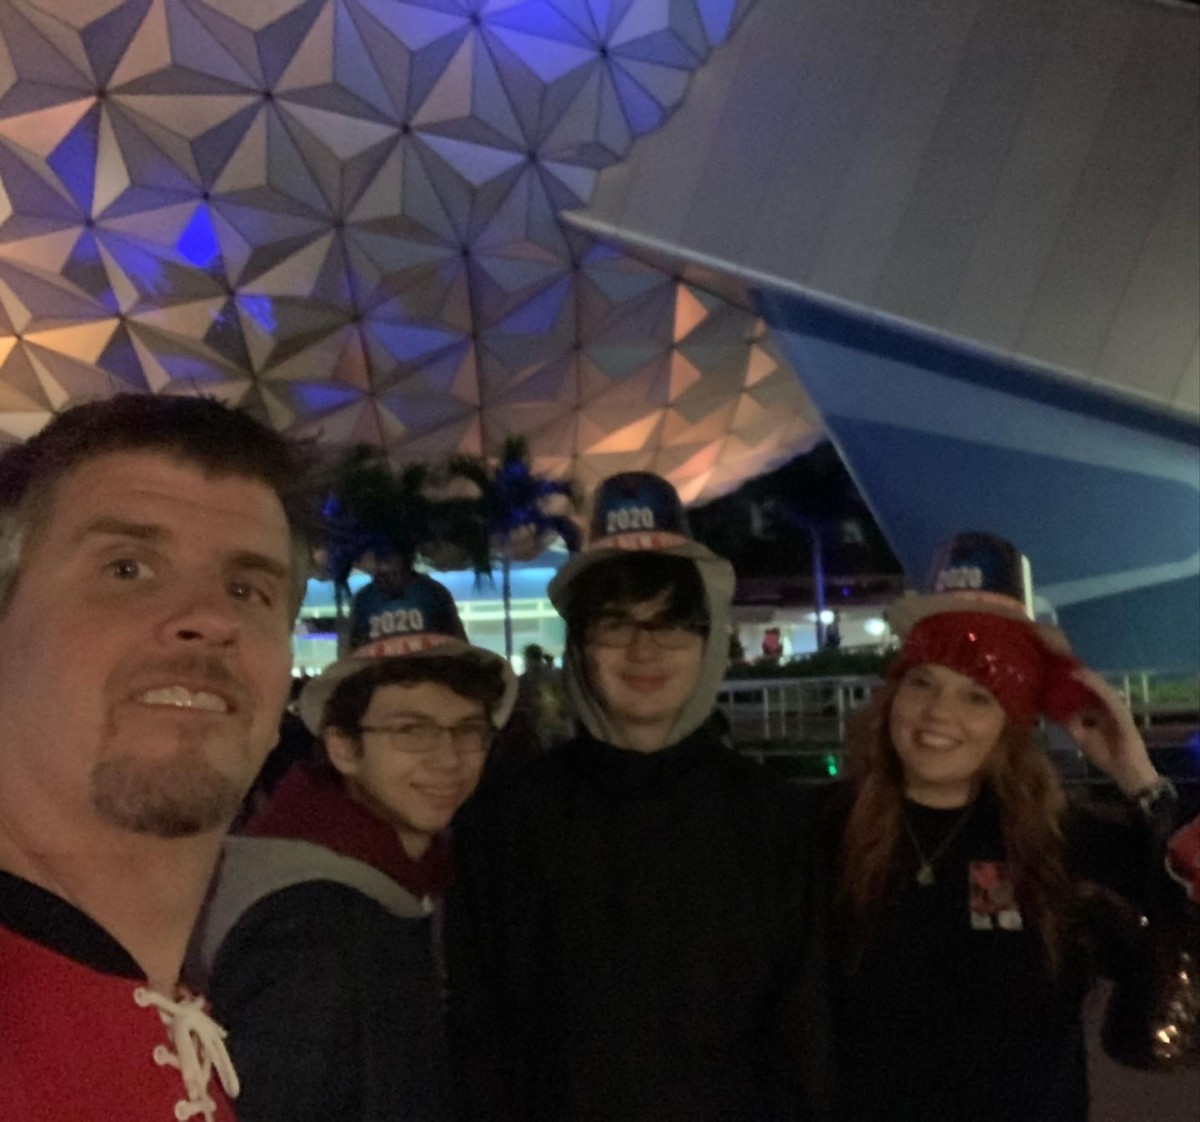 New Year's Eve at Epcot! Our experience! 9